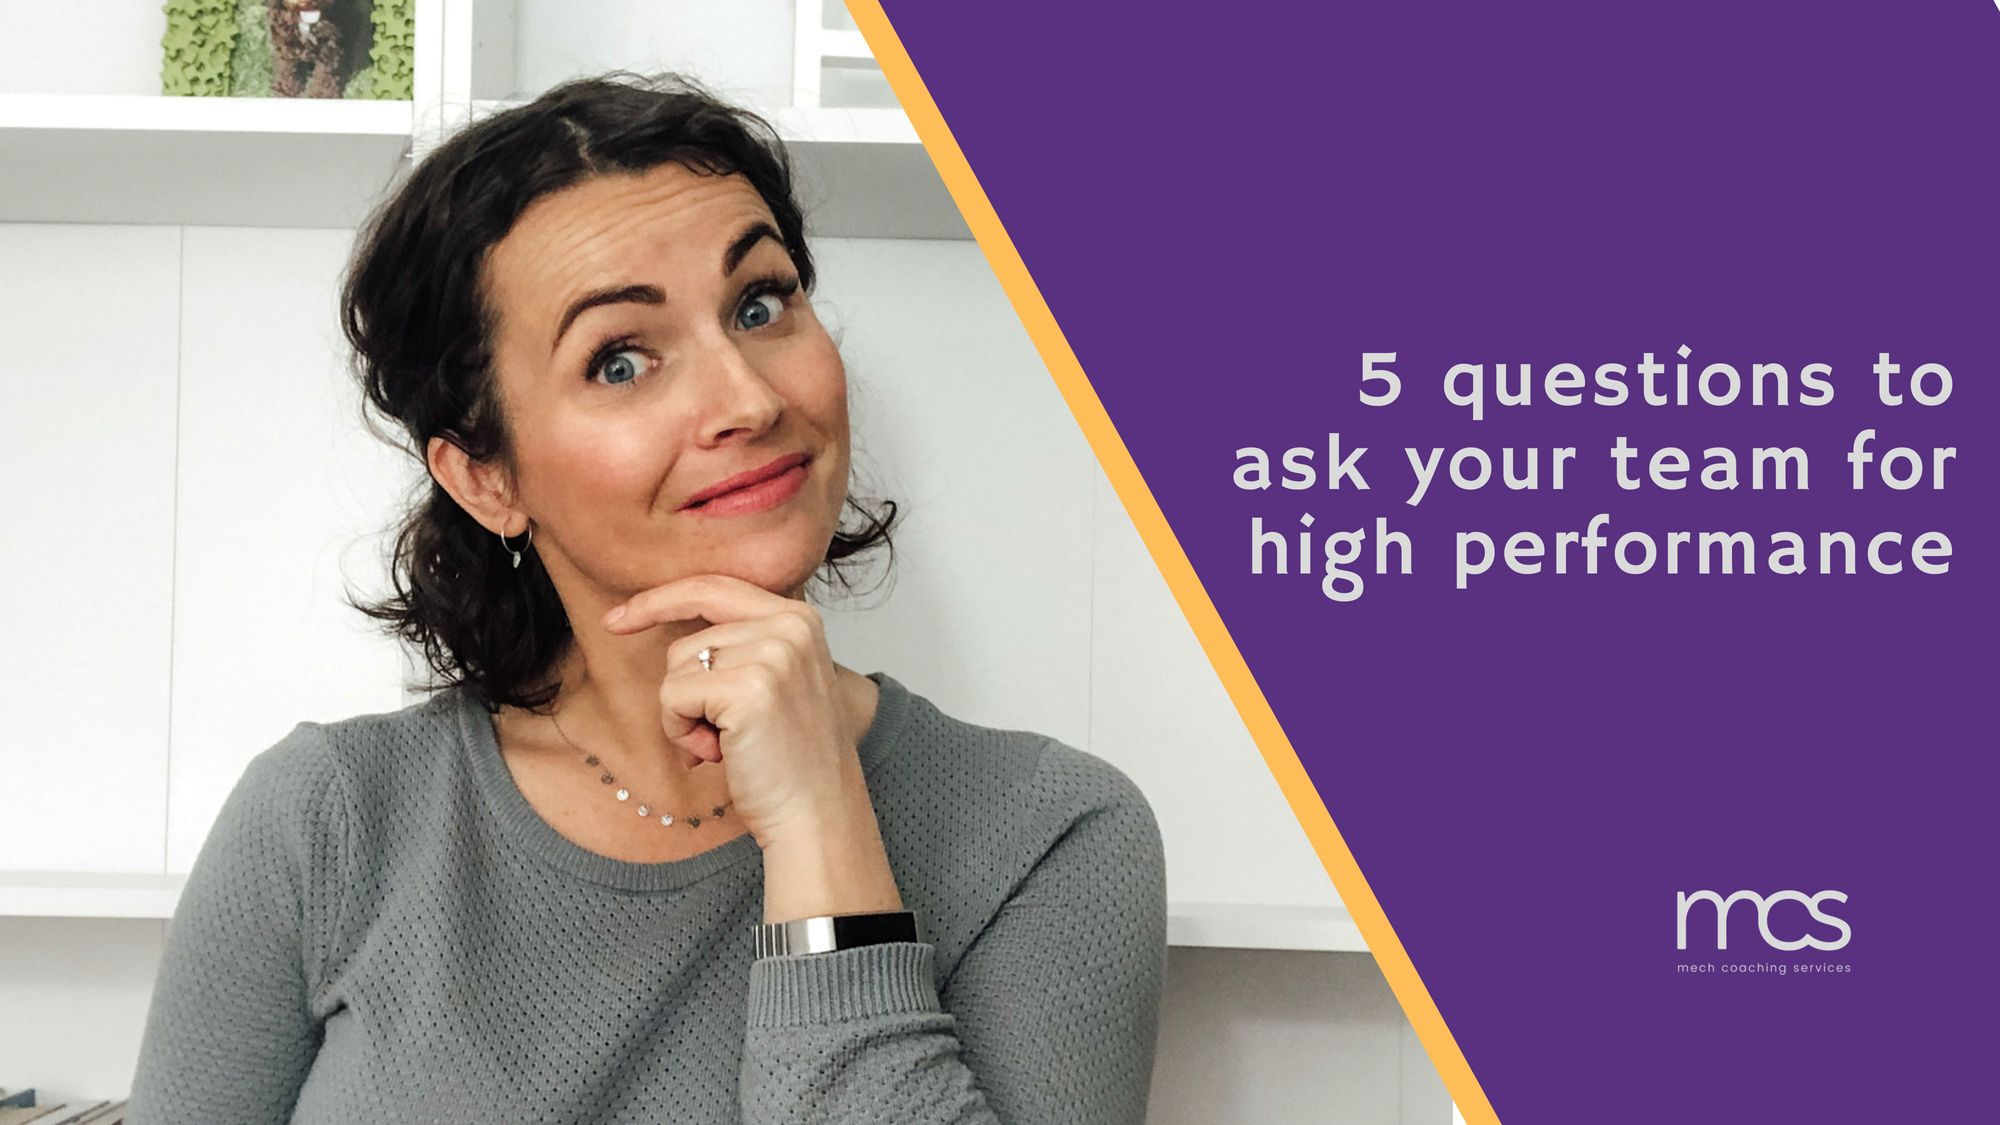 5 Q's to ask your team for high performance